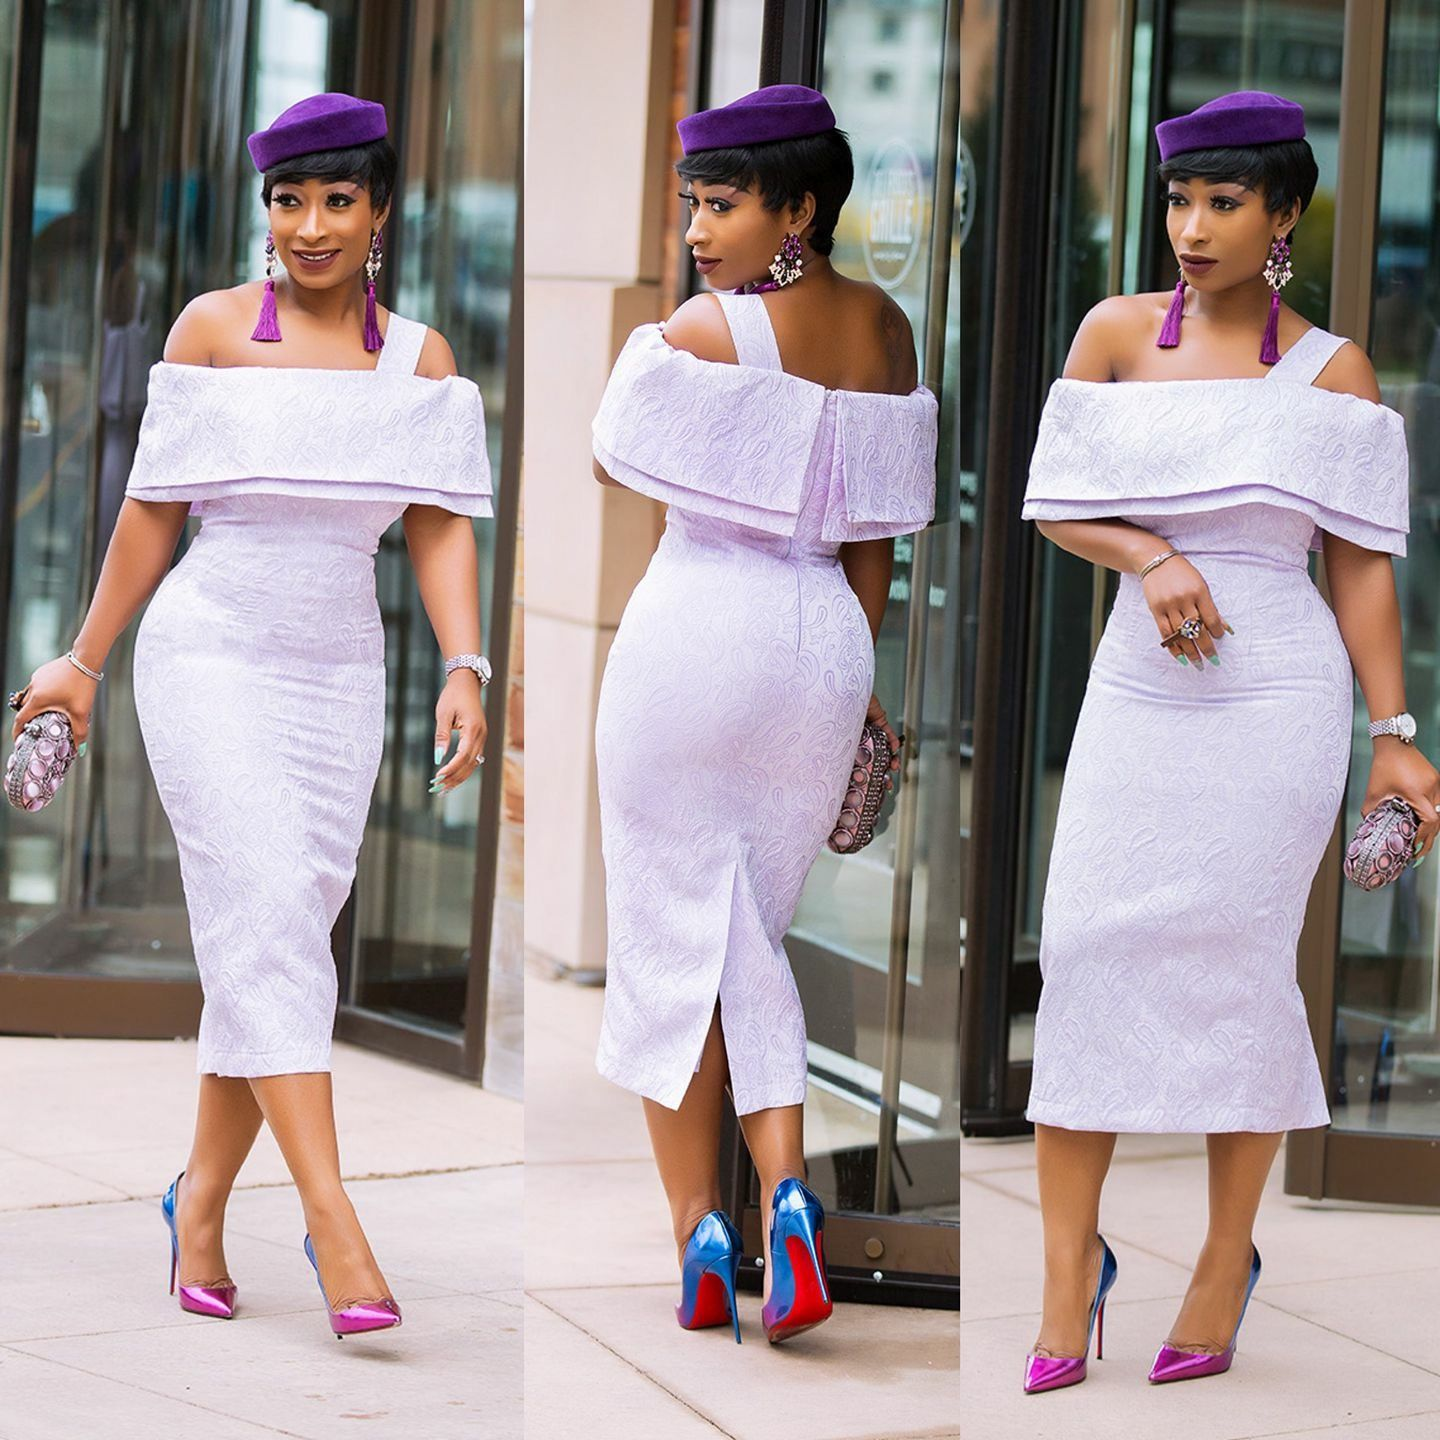 Lace short dress styles in nigeria  Pin by temitayo on Dresses  Pinterest  African fashion Africans